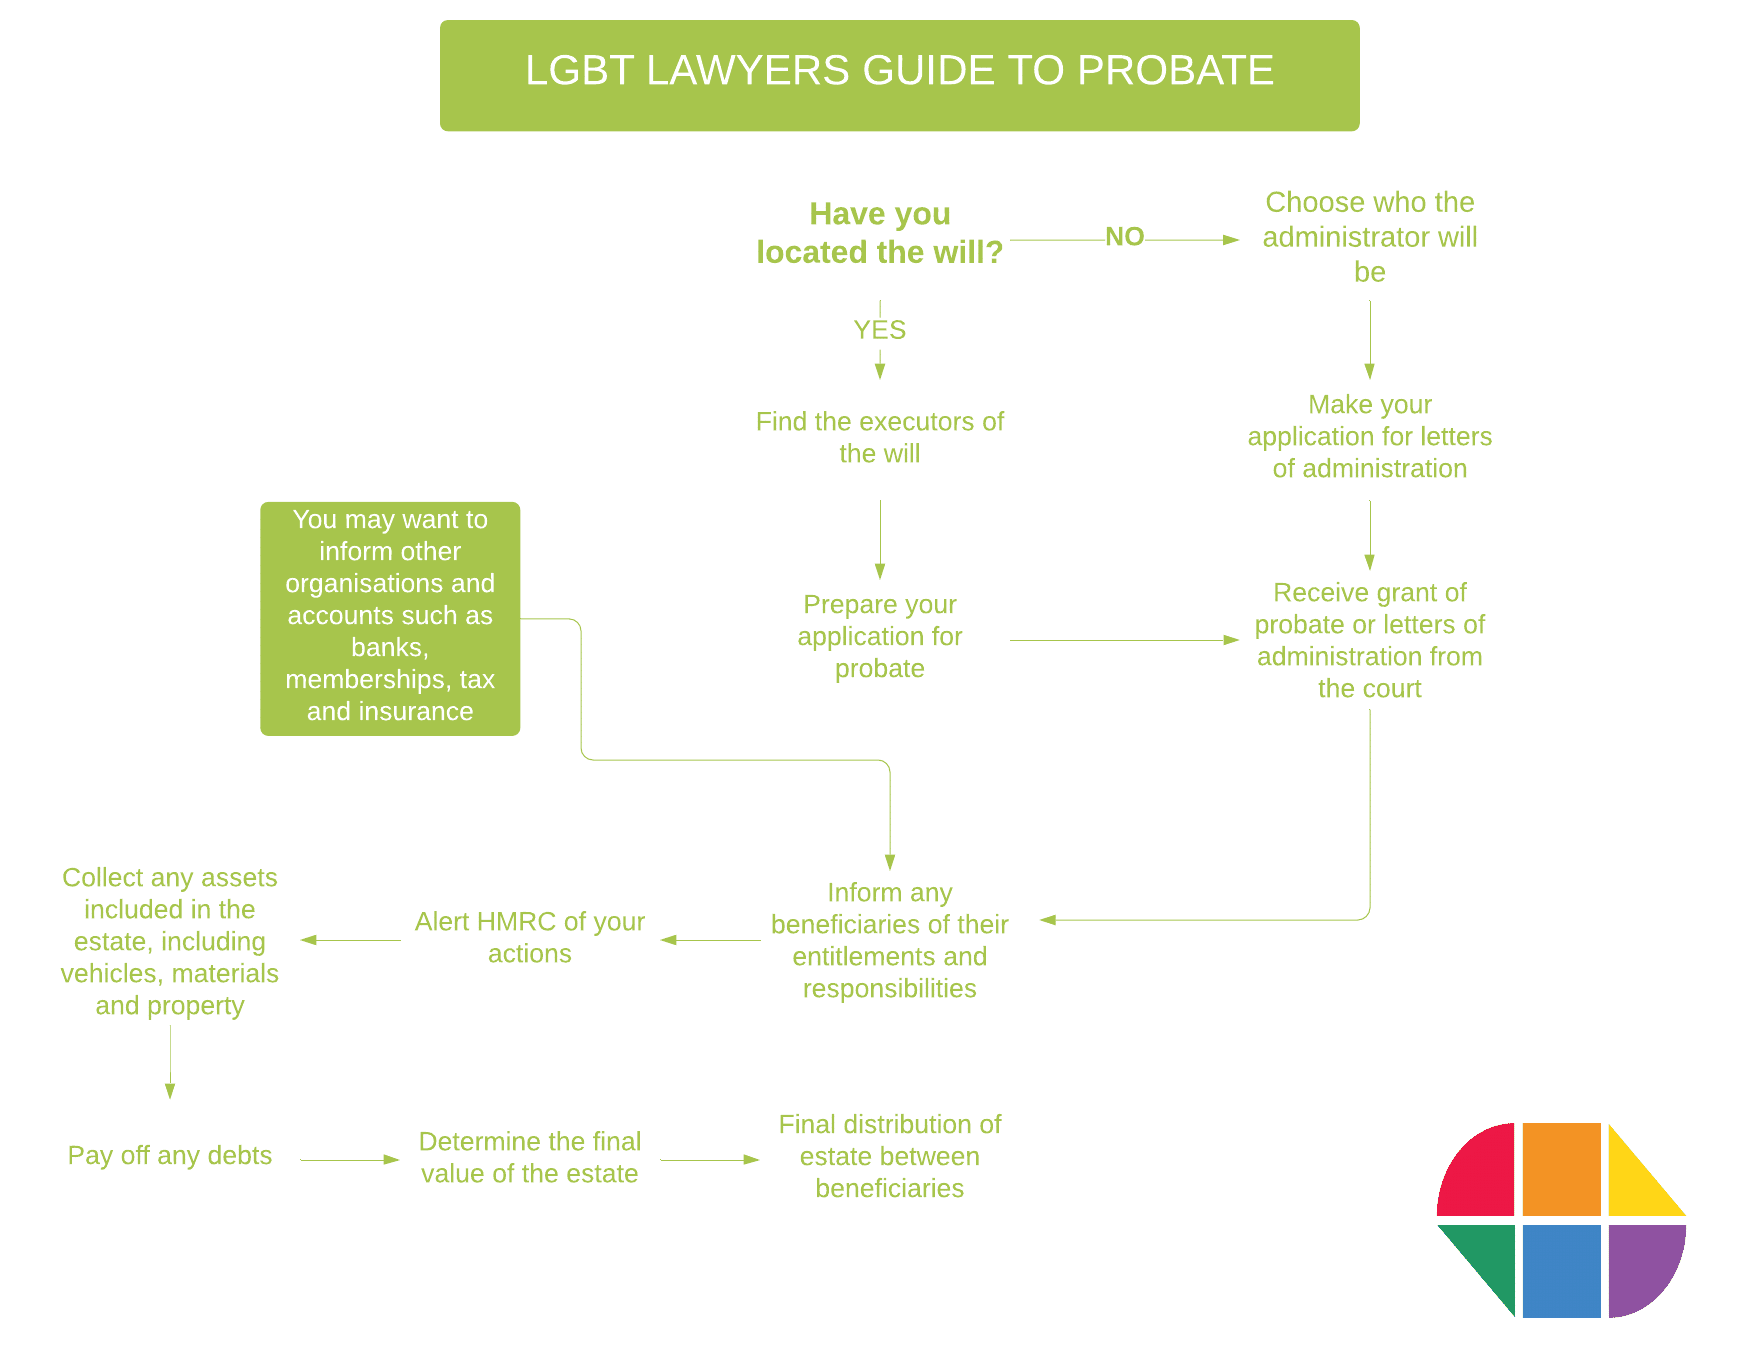 LGBT Lawyers guide to probate